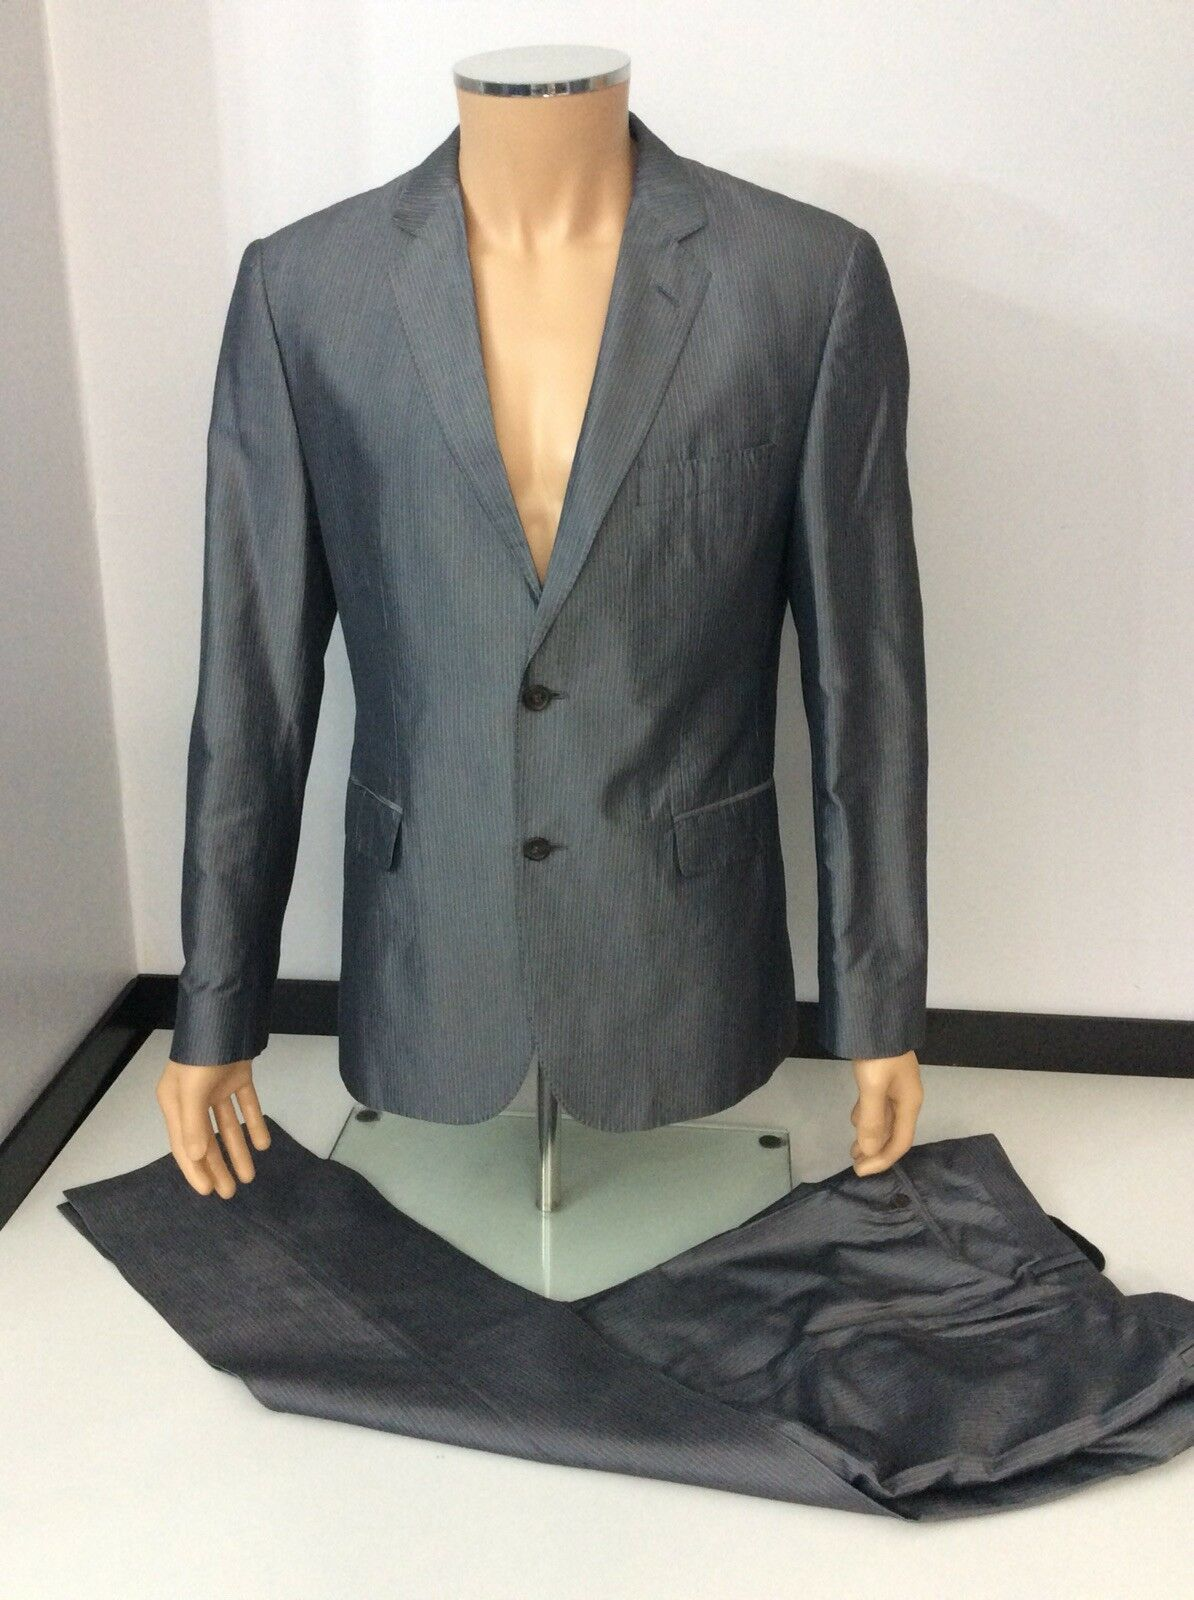 e19b47d62 Hugo Boss Eagle 2 Piece Grey, Size 42, Medium, Blazer & Trousers ...